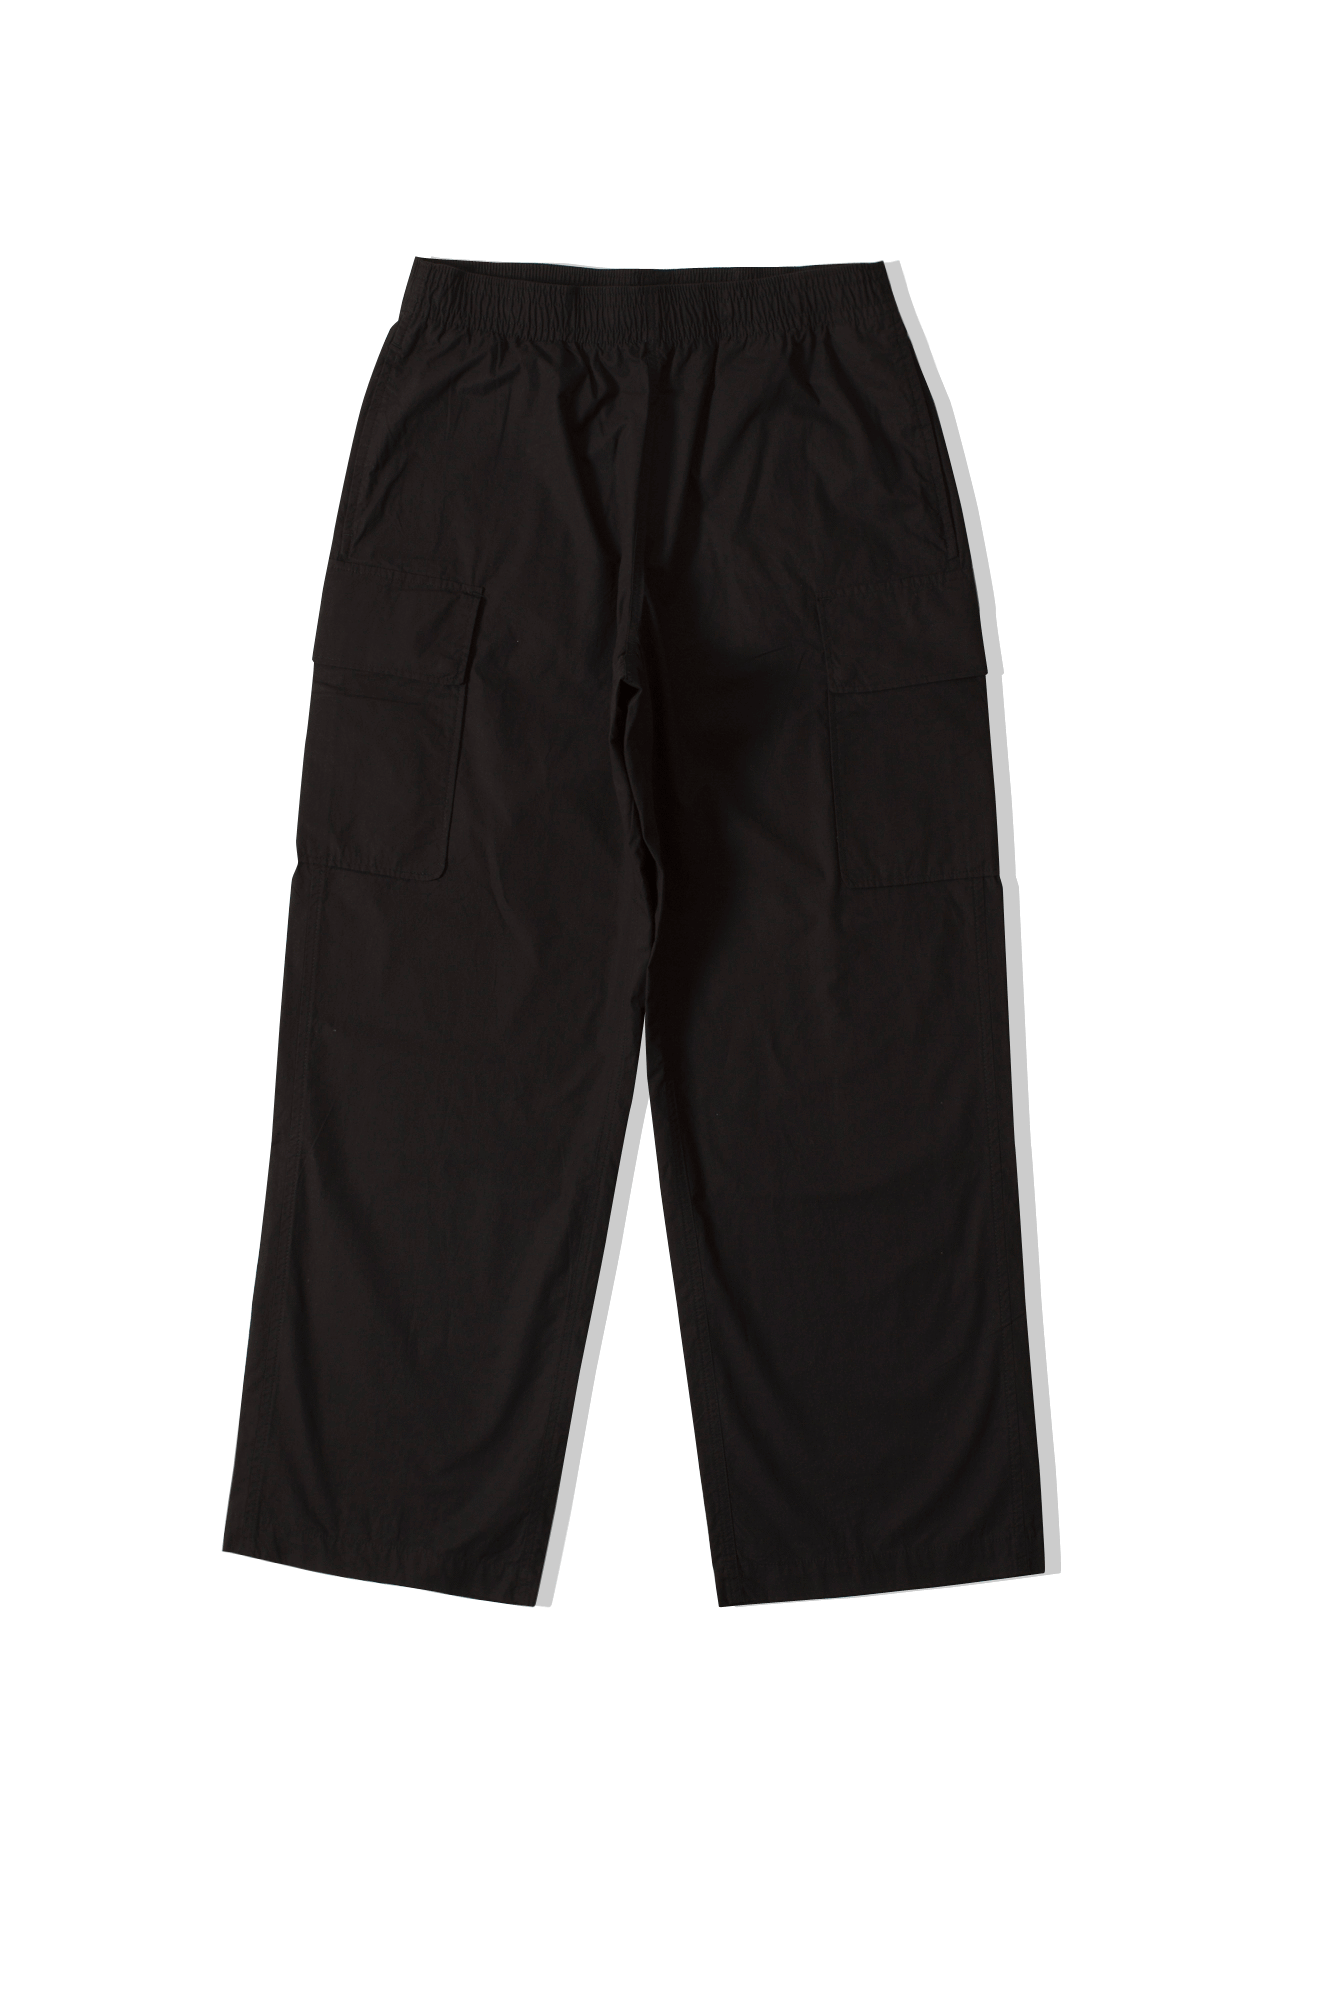 Rest Trousers Washed Black Parachute Cotton Black